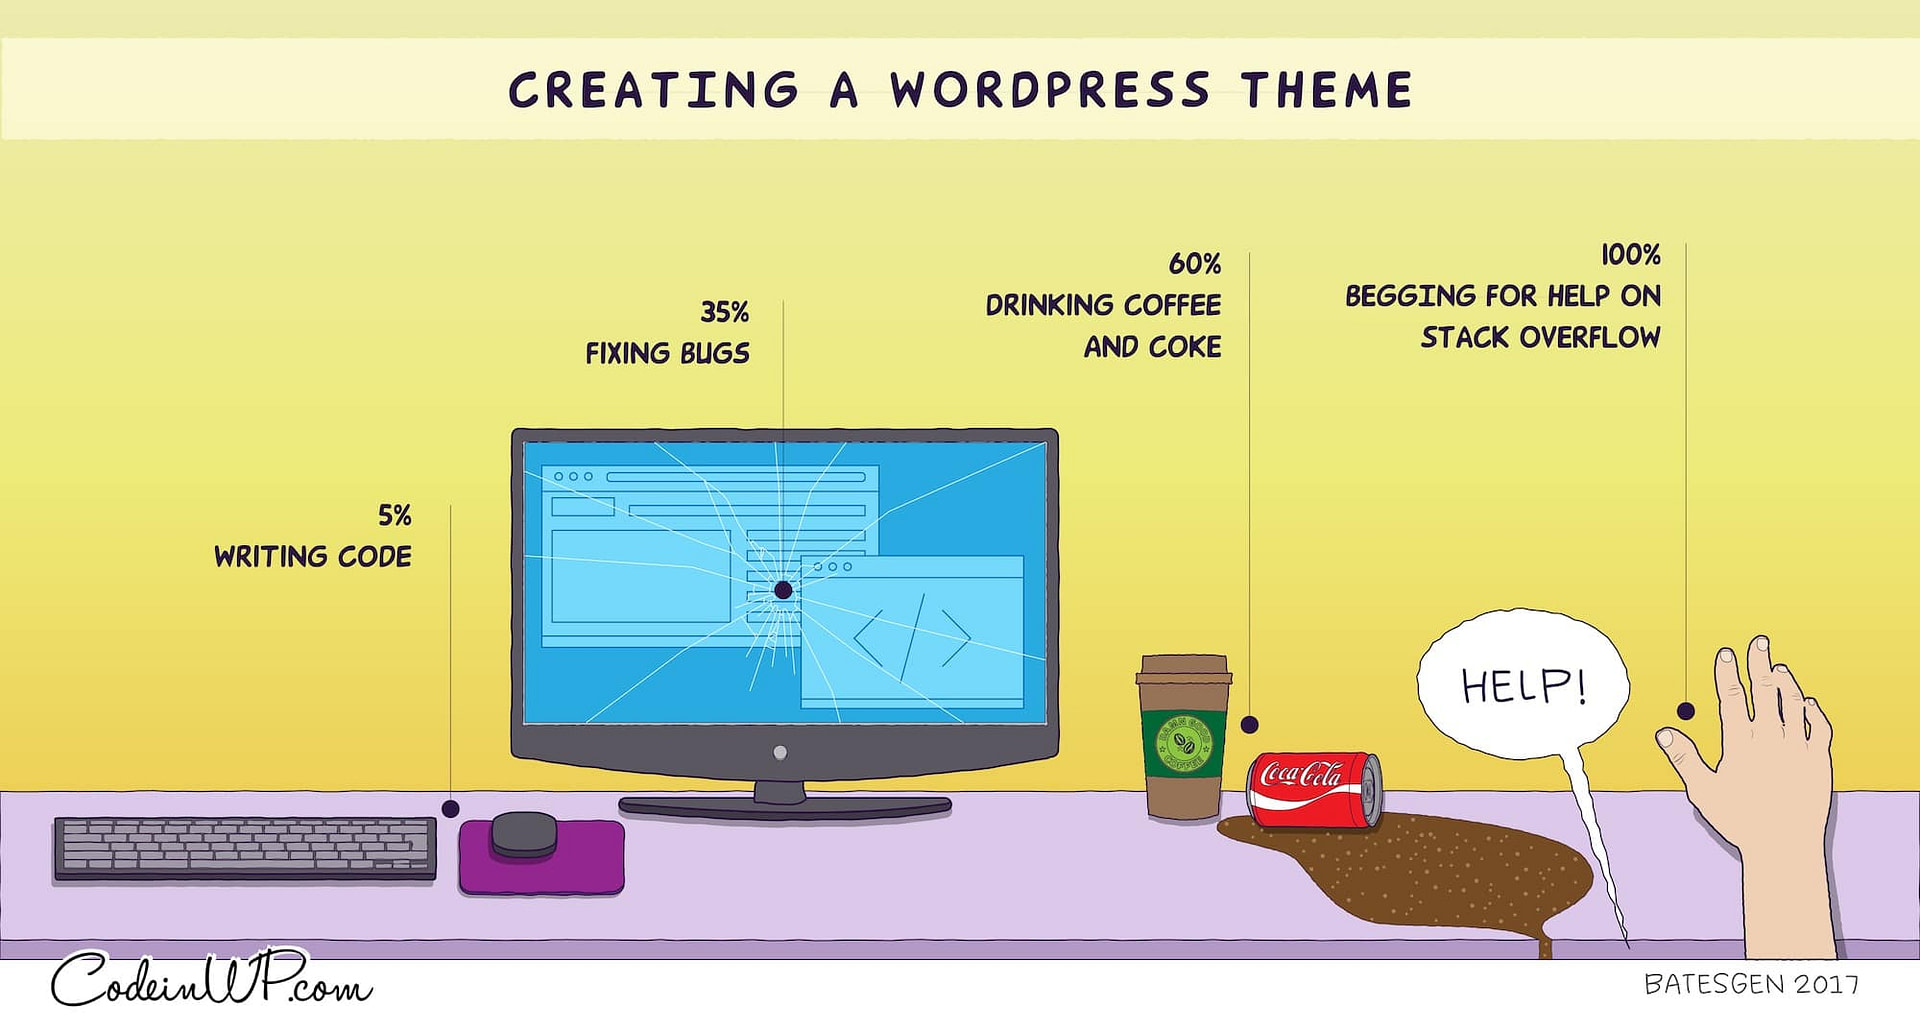 the breakdown of time and tasks when creating a WordPress theme from scratch